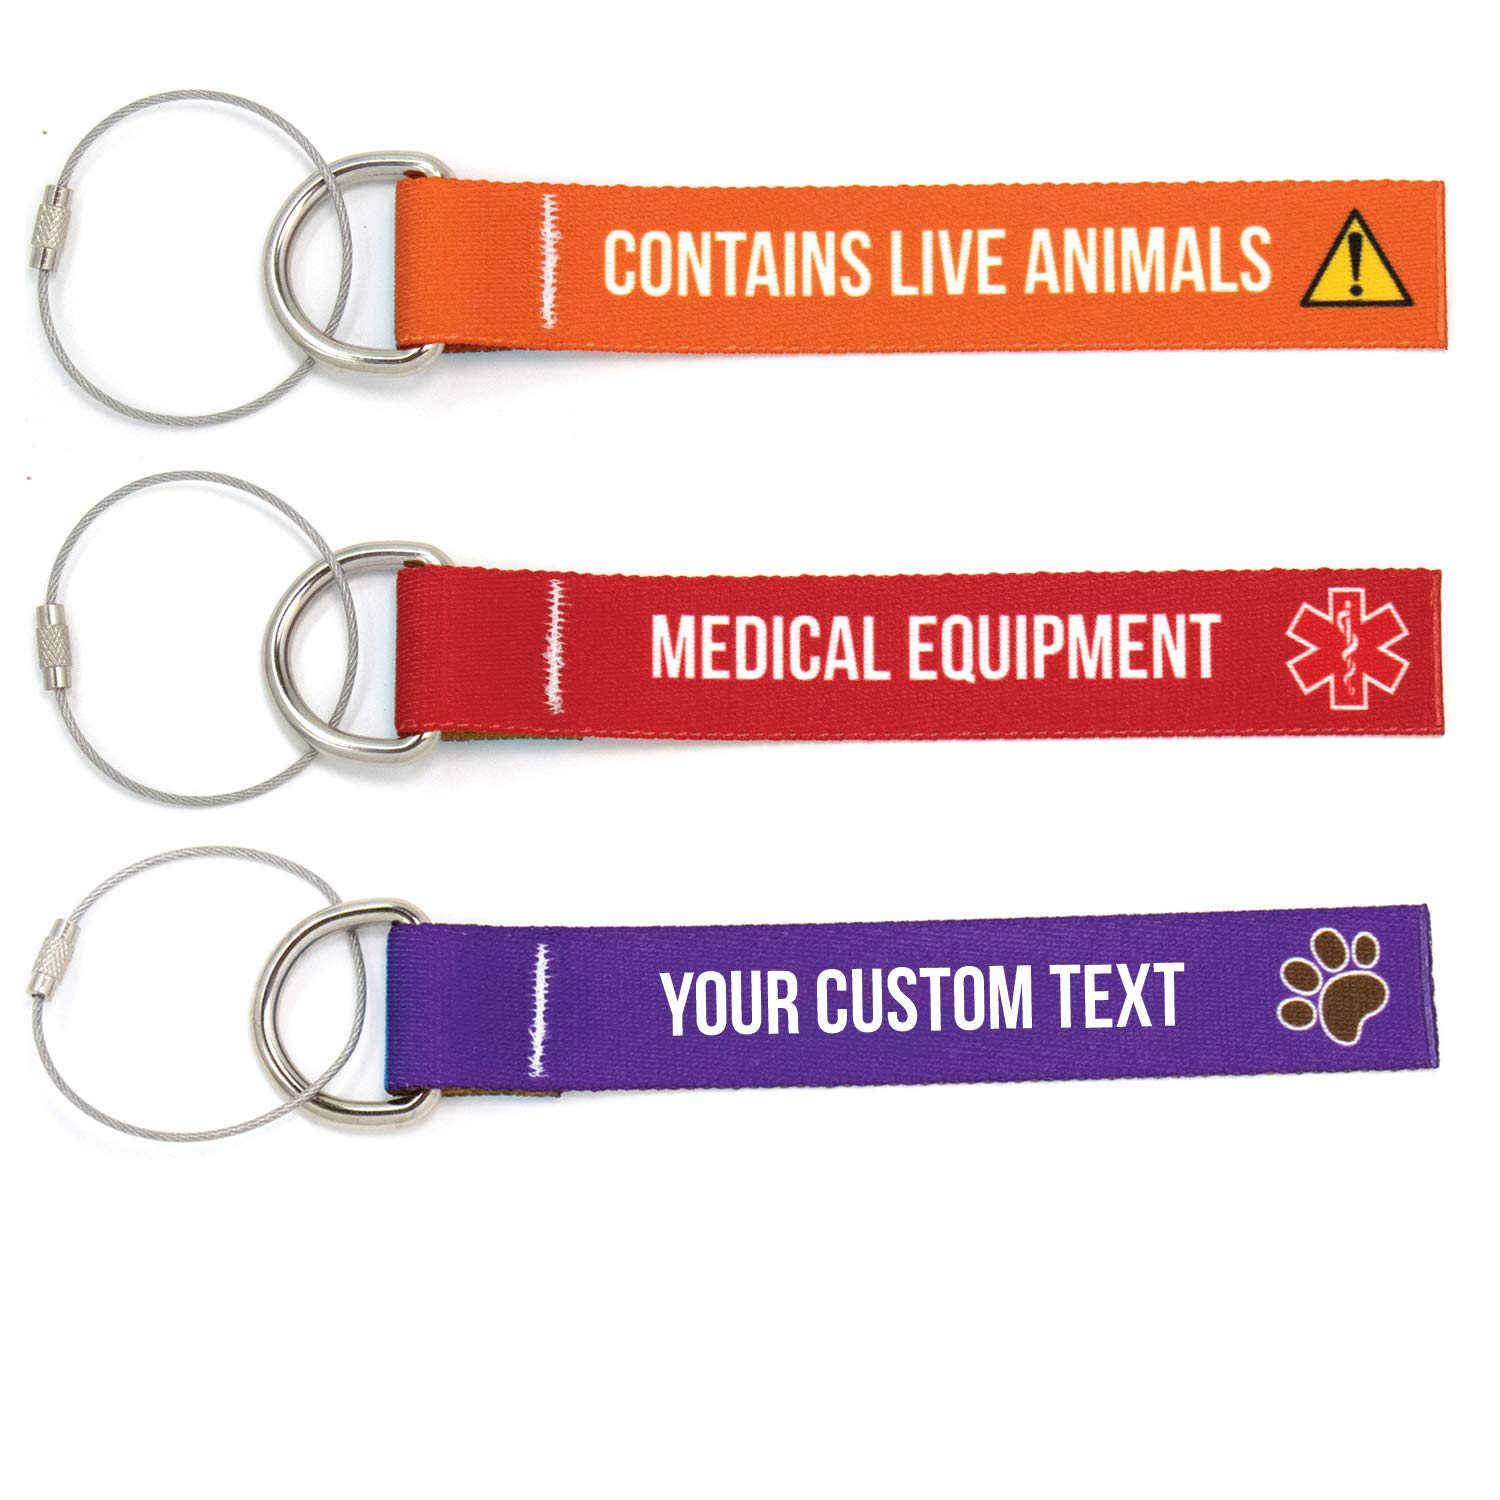 Buttonsmith Custom Luggage Tags - Set of 3 - Customize With Your Text - Designed, Printed, and Assembled in USA by Buttonsmith